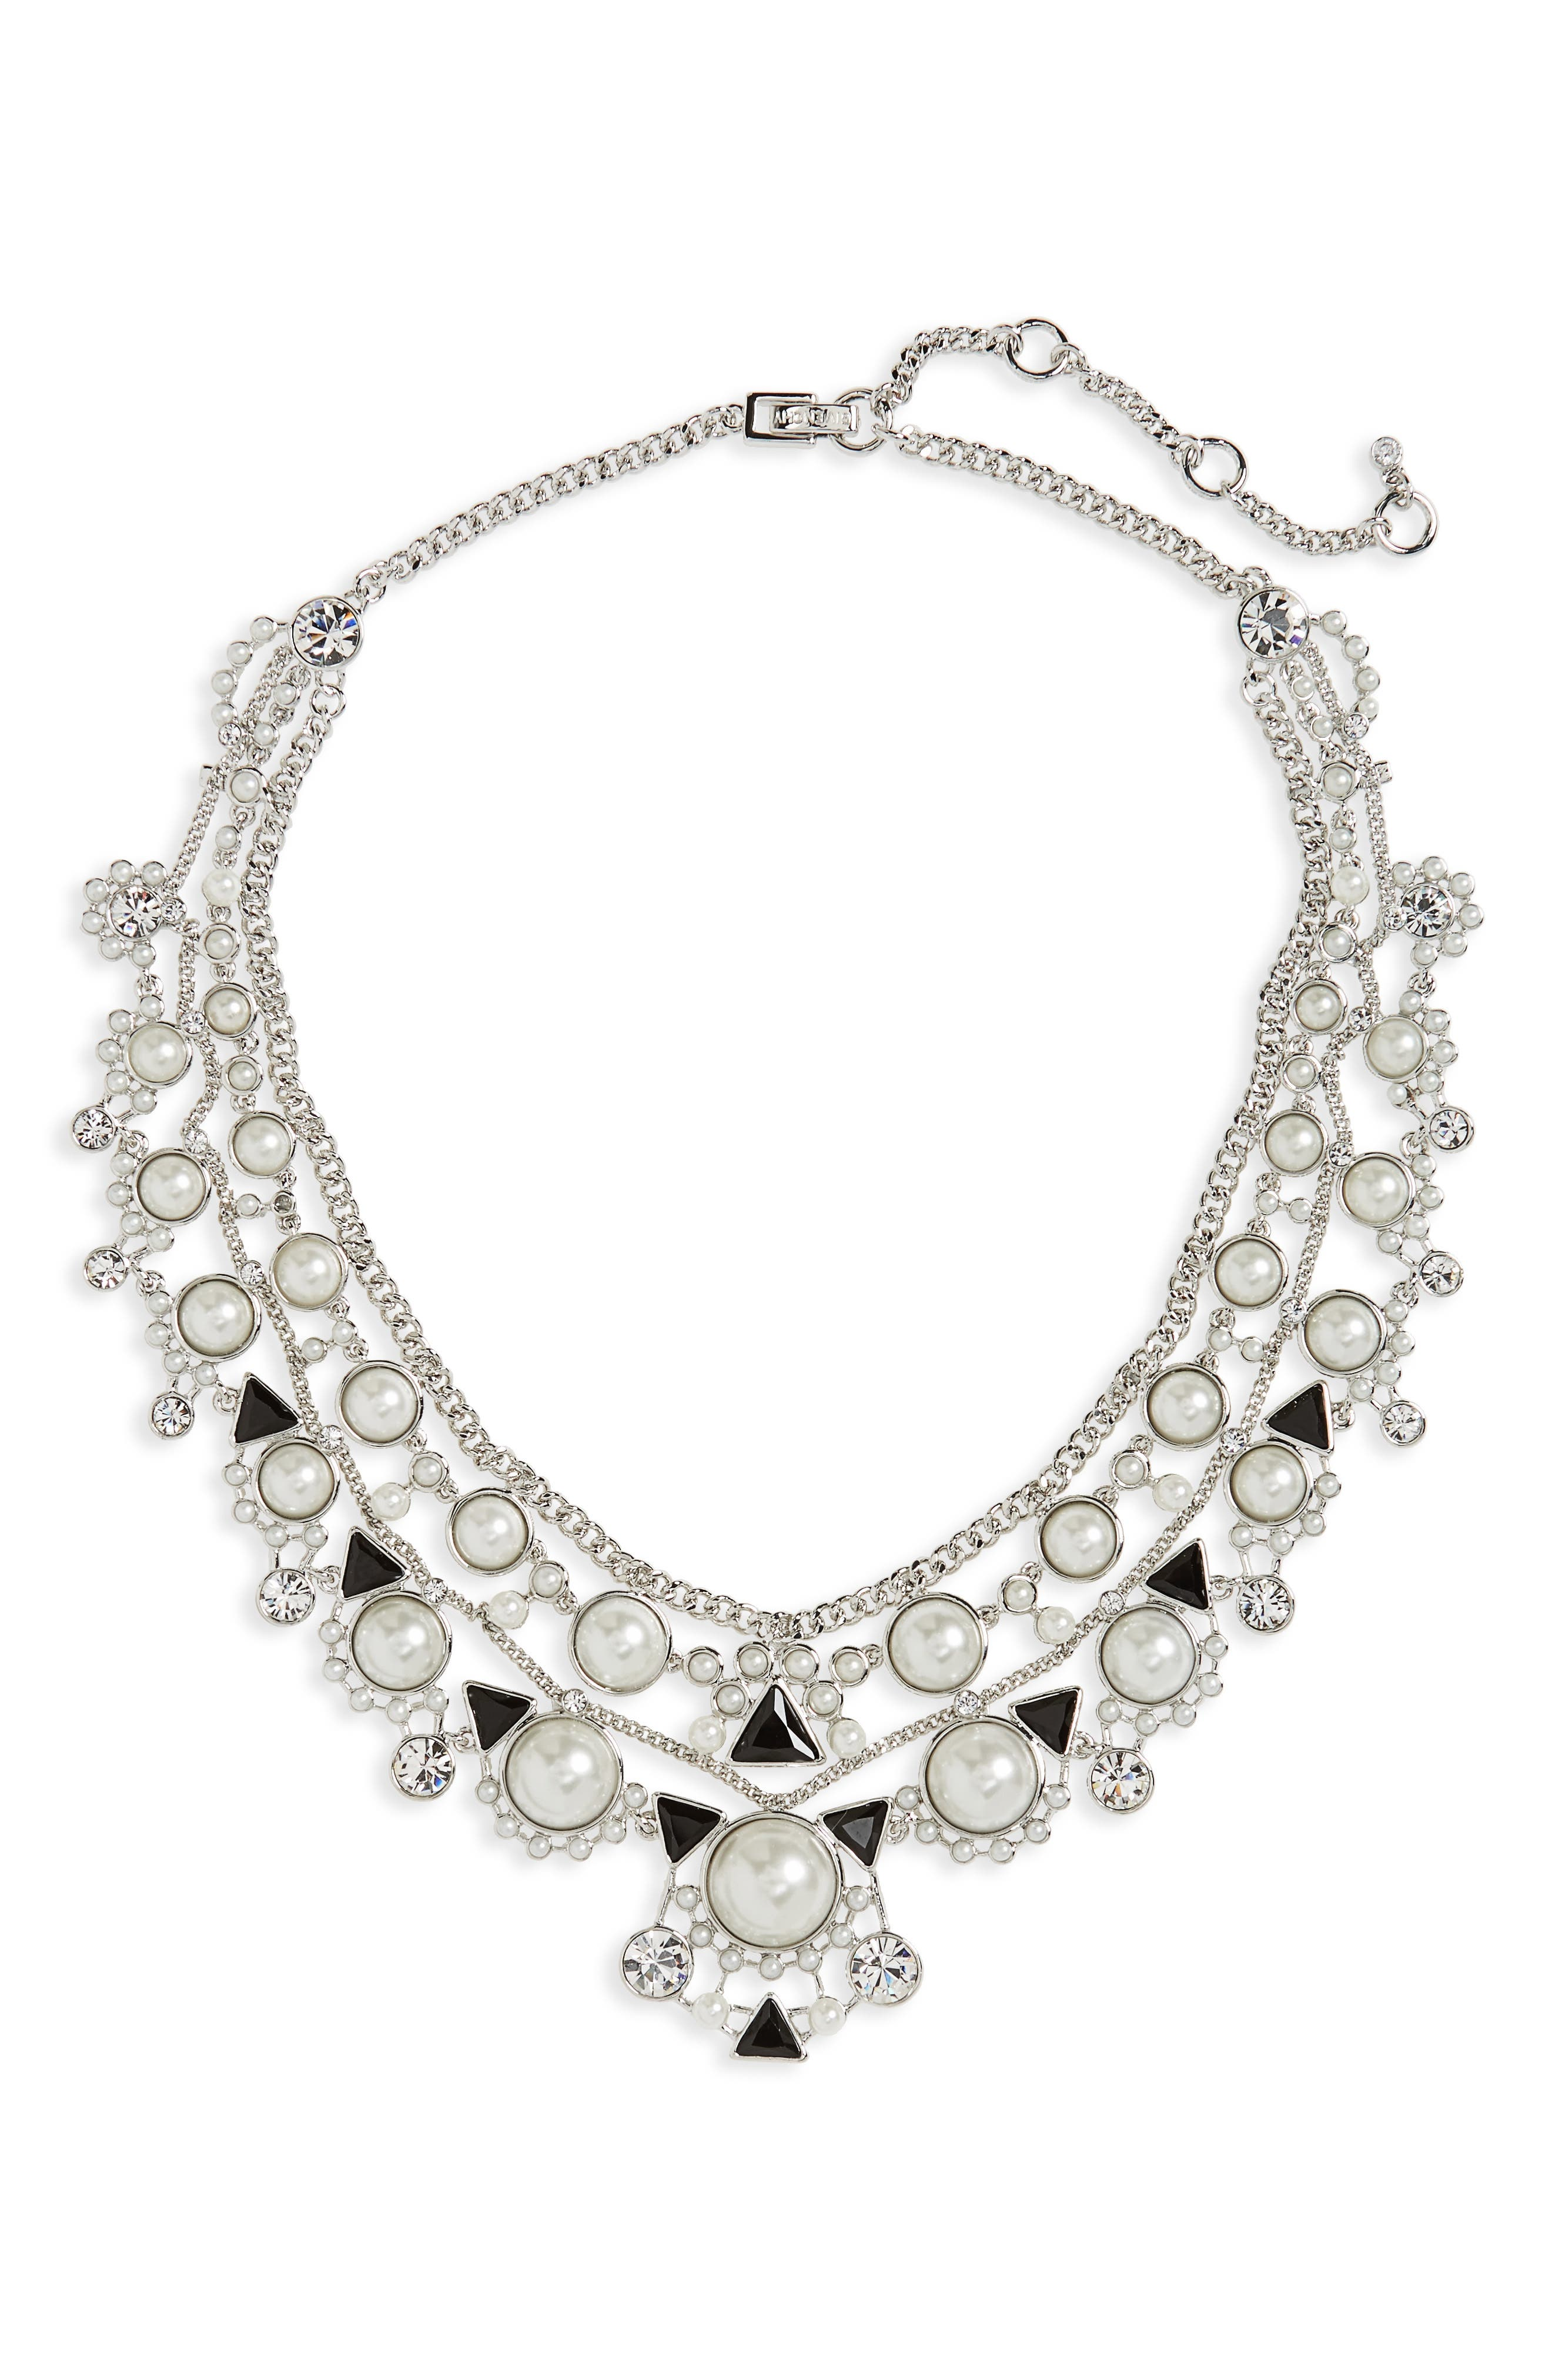 Givenchy Chelsea Drama Collar Necklace